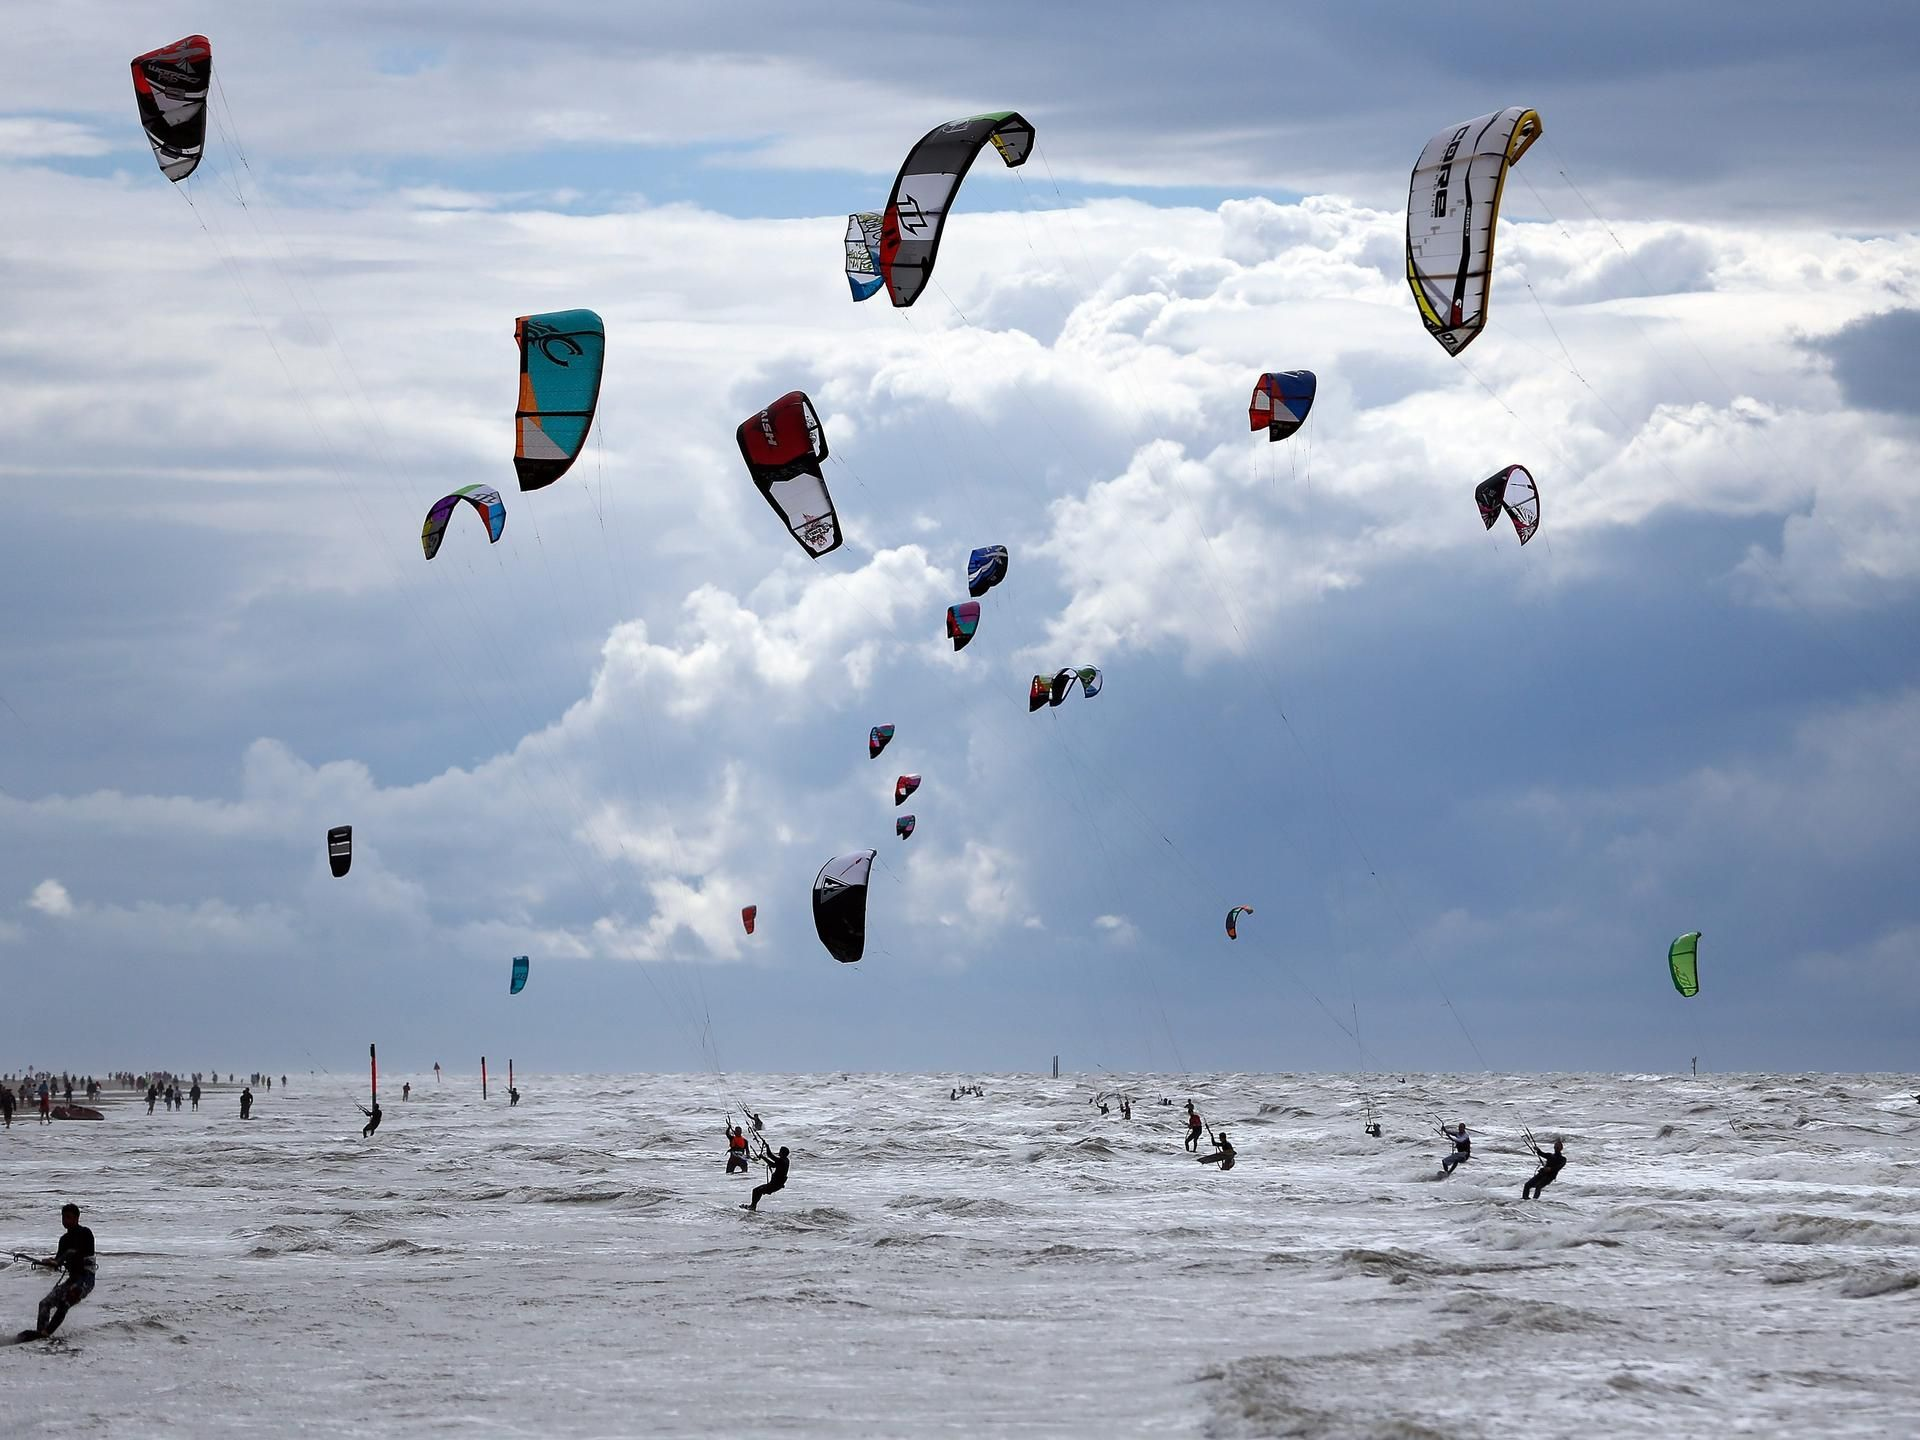 The Day In Pictures Kite Surfing North Sea Surfing